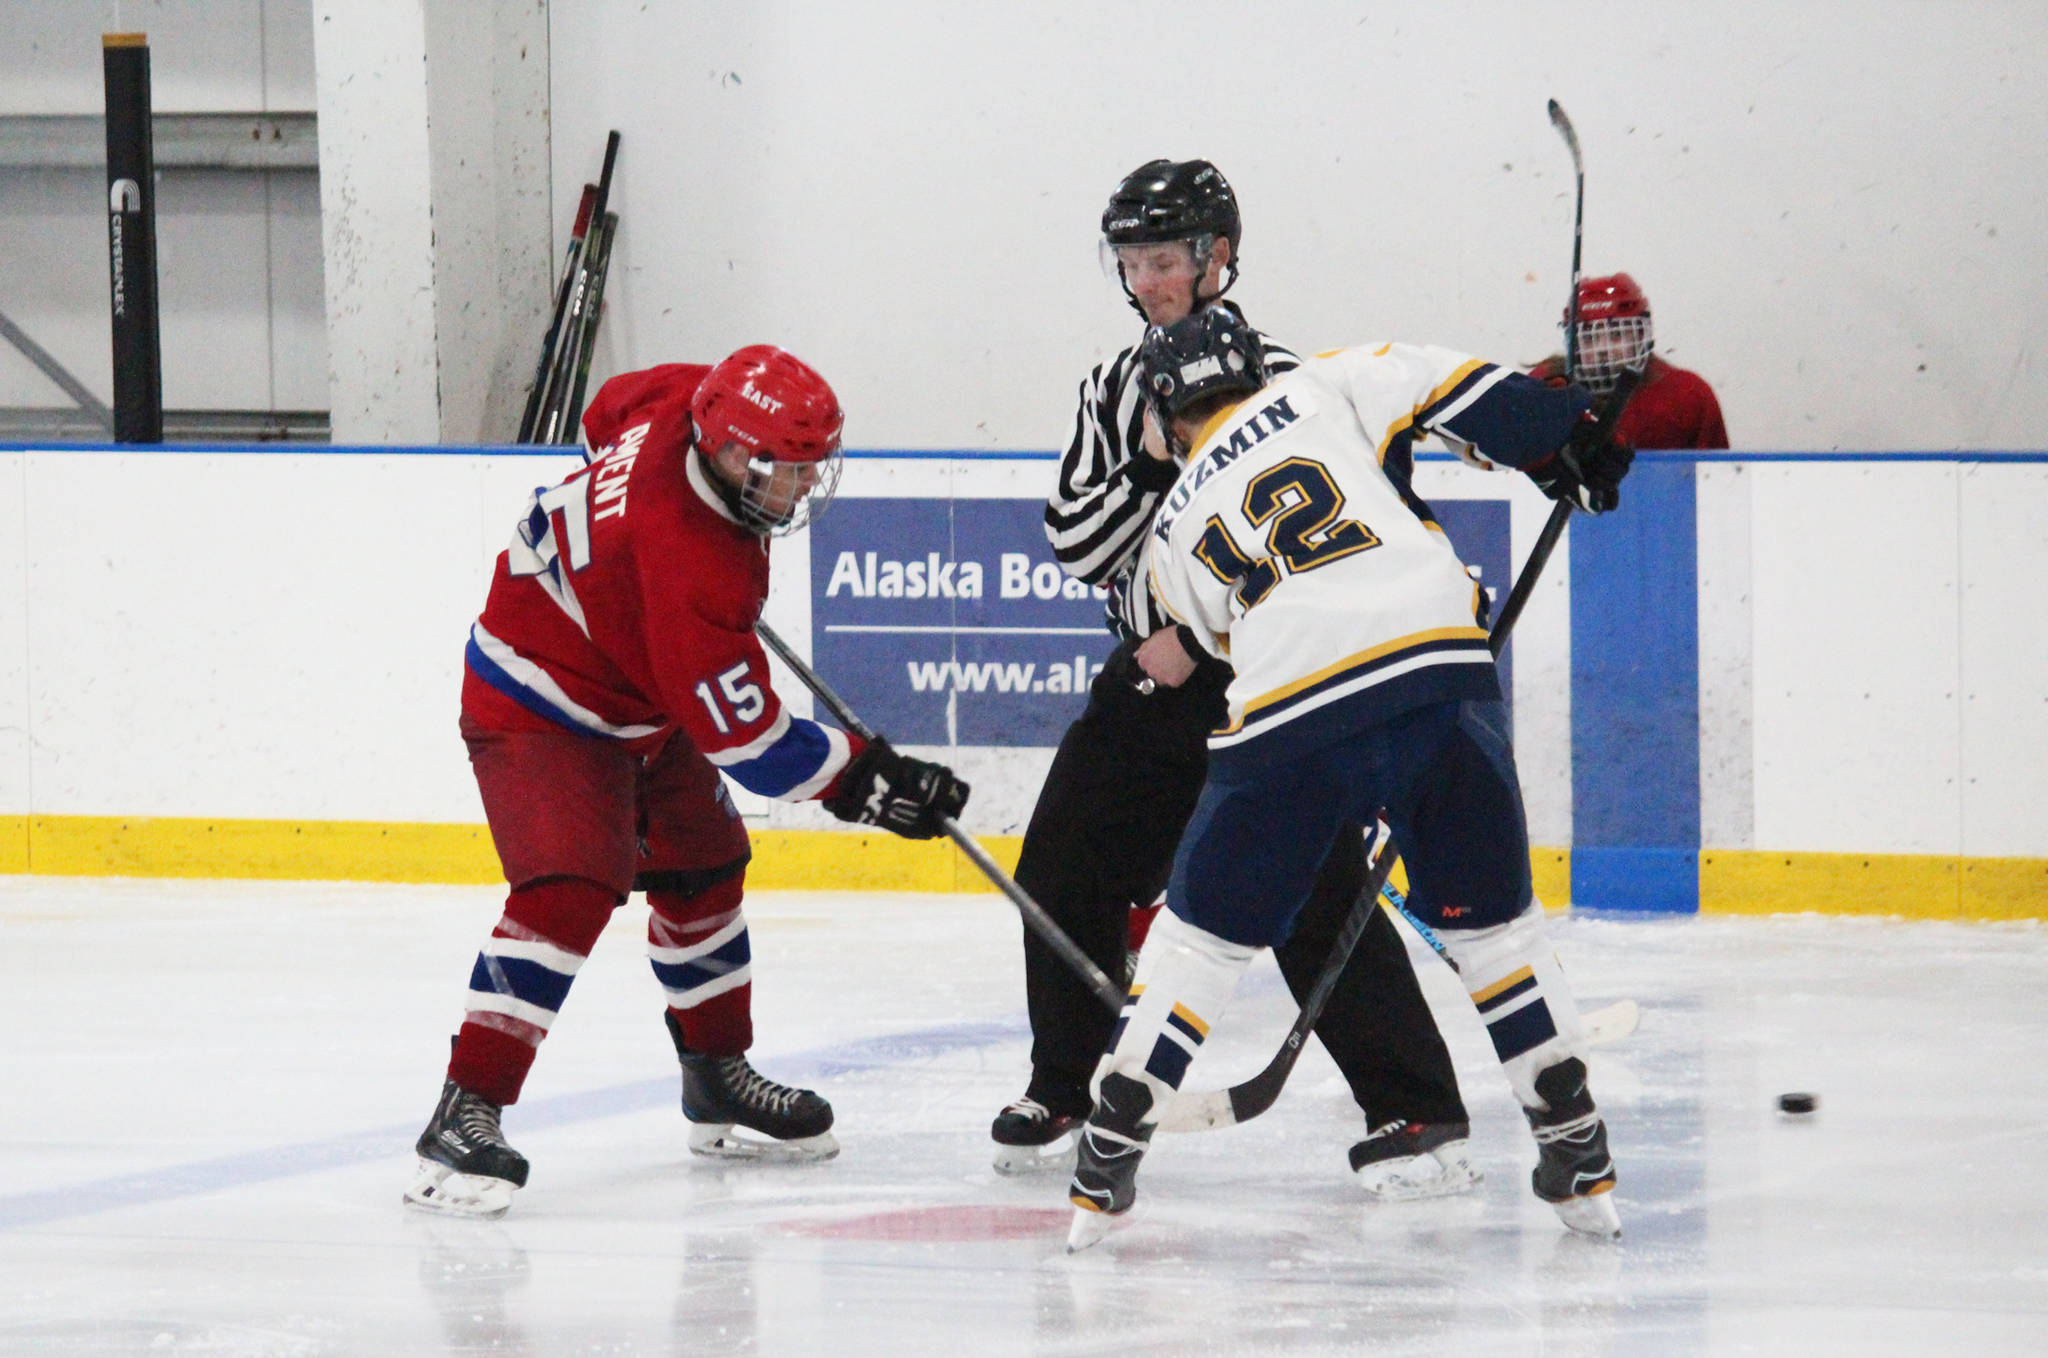 Homer senior Dimitry Kuzmin faces off against East Anchorage High School's Devon Ament during their game Saturday, Jan. 20, 2018 at the Kevin Bell Arena in Homer, Alaska. The Mariners beat East, whose team was missing four players, 10-1. (Photo by Megan Pacer/Homer News)